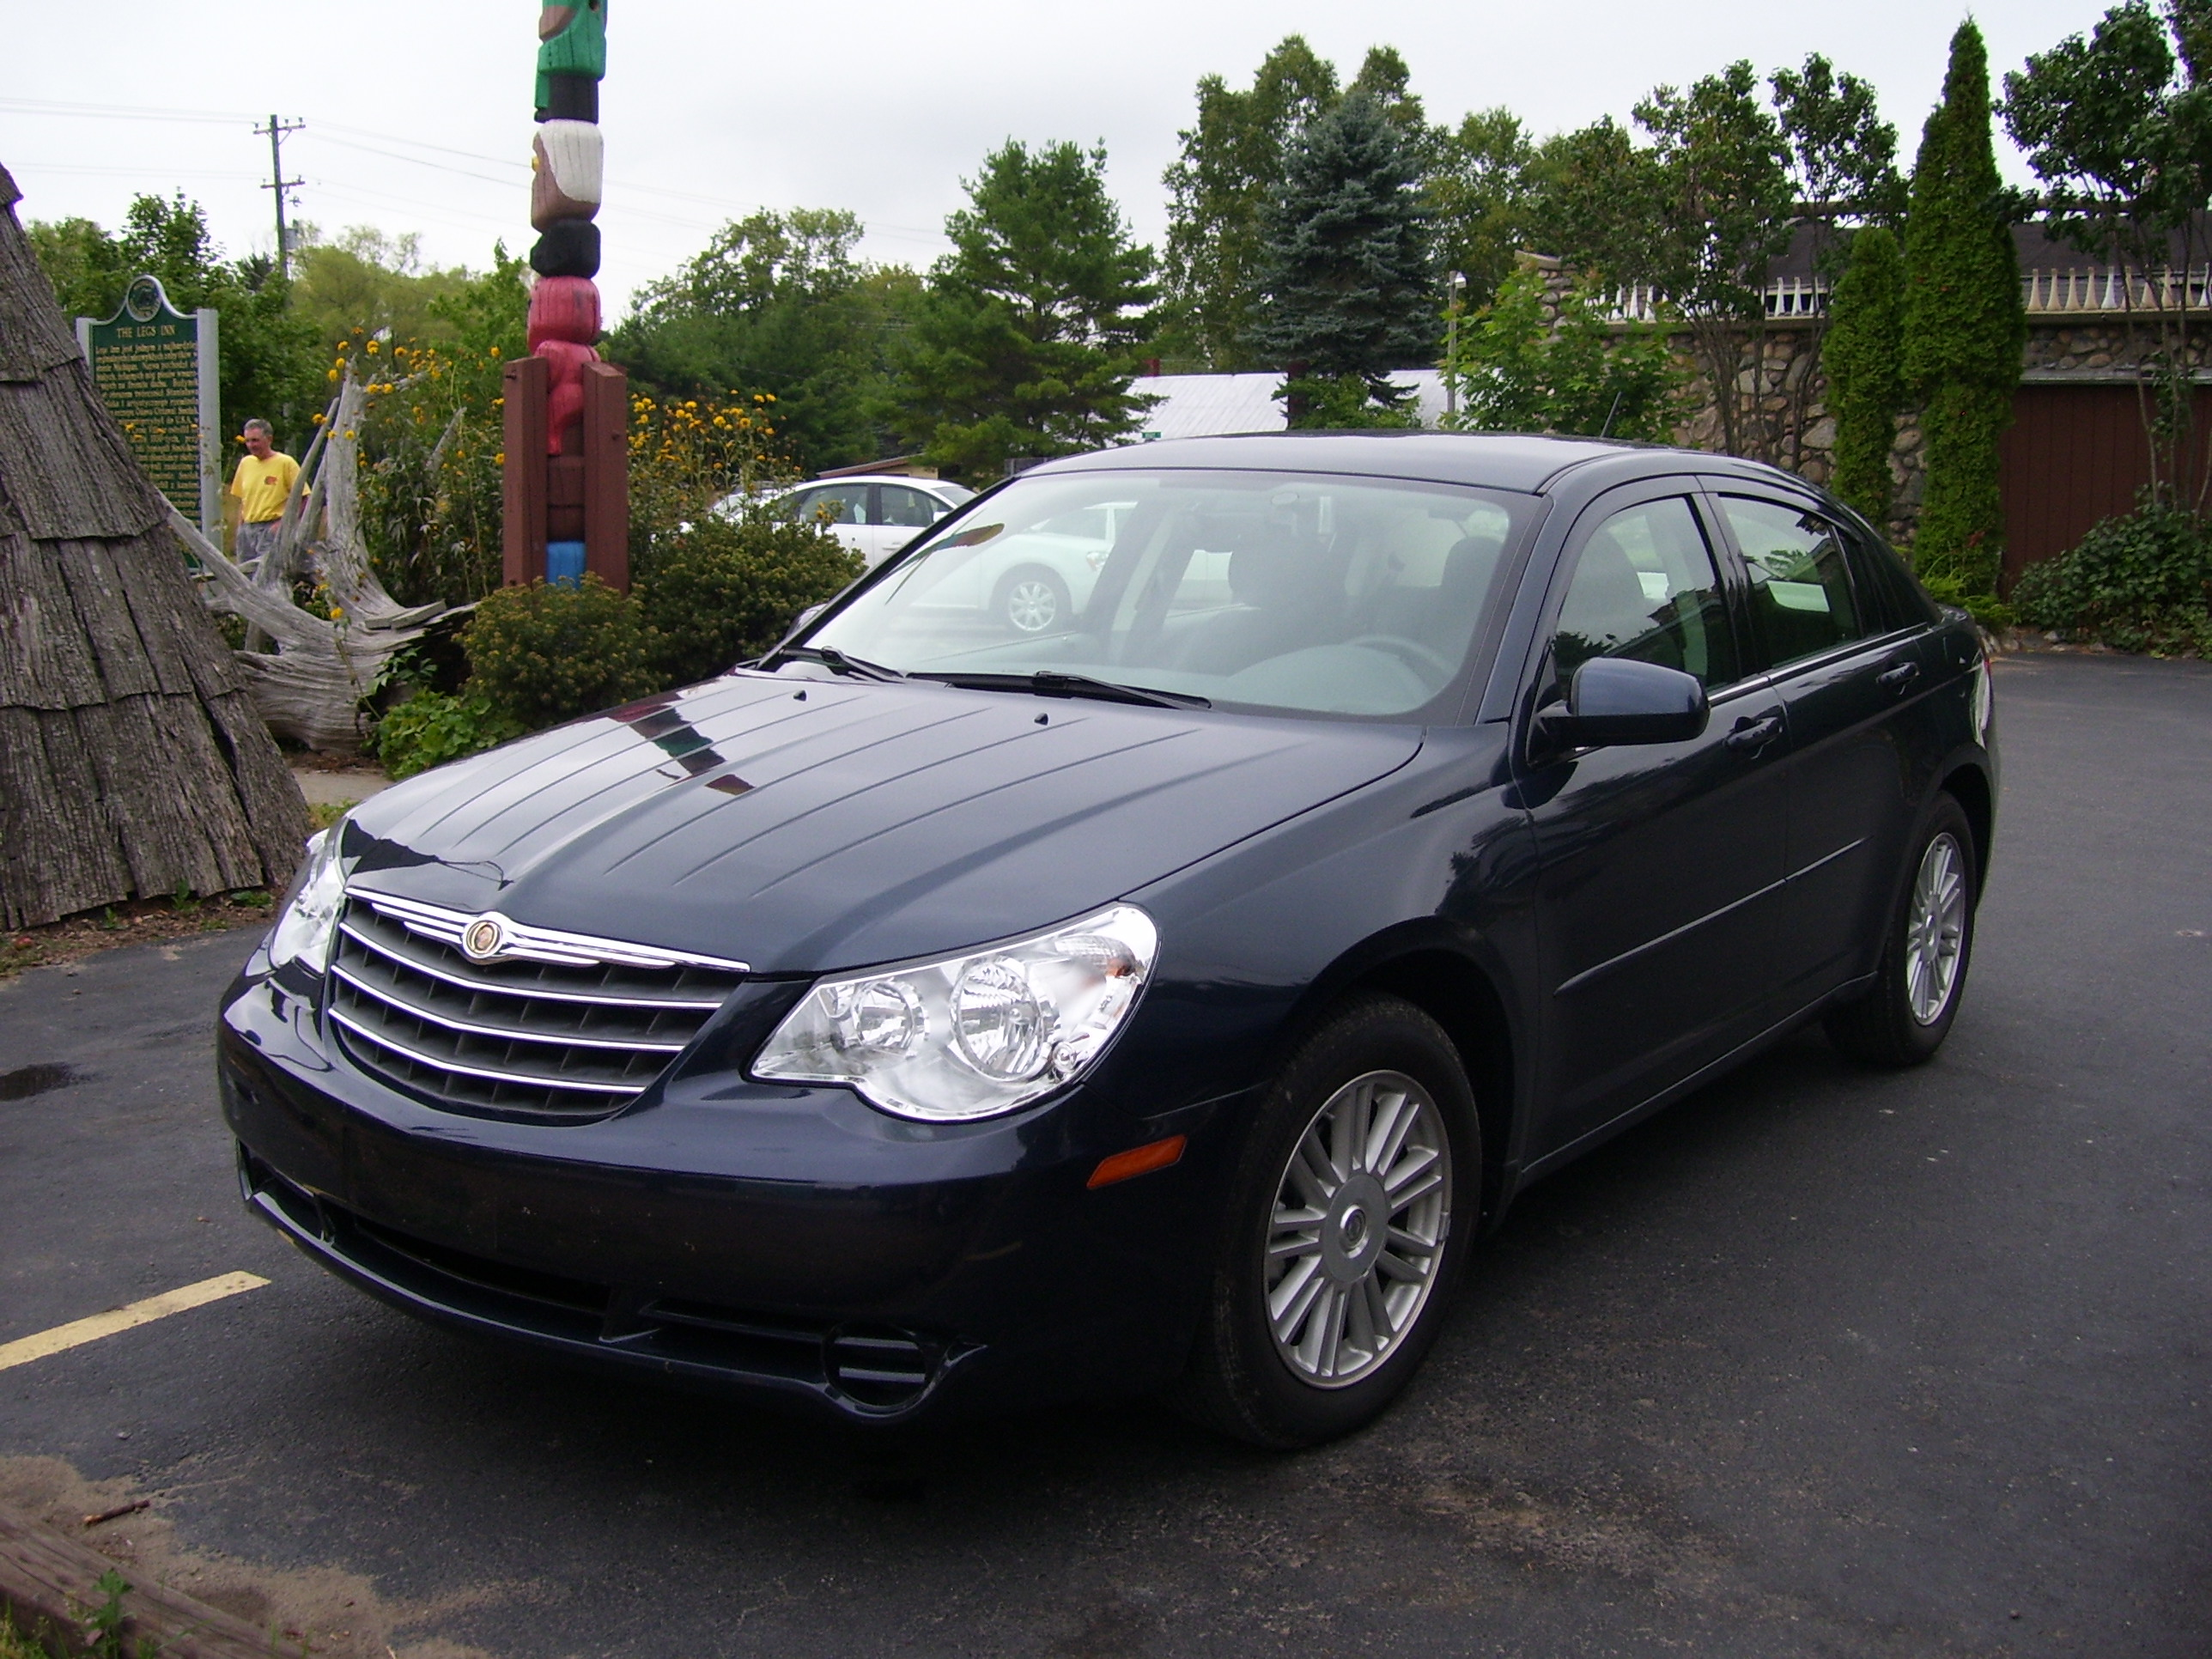 File Chrysler Sebring 2007 Jpg Wikimedia Commons